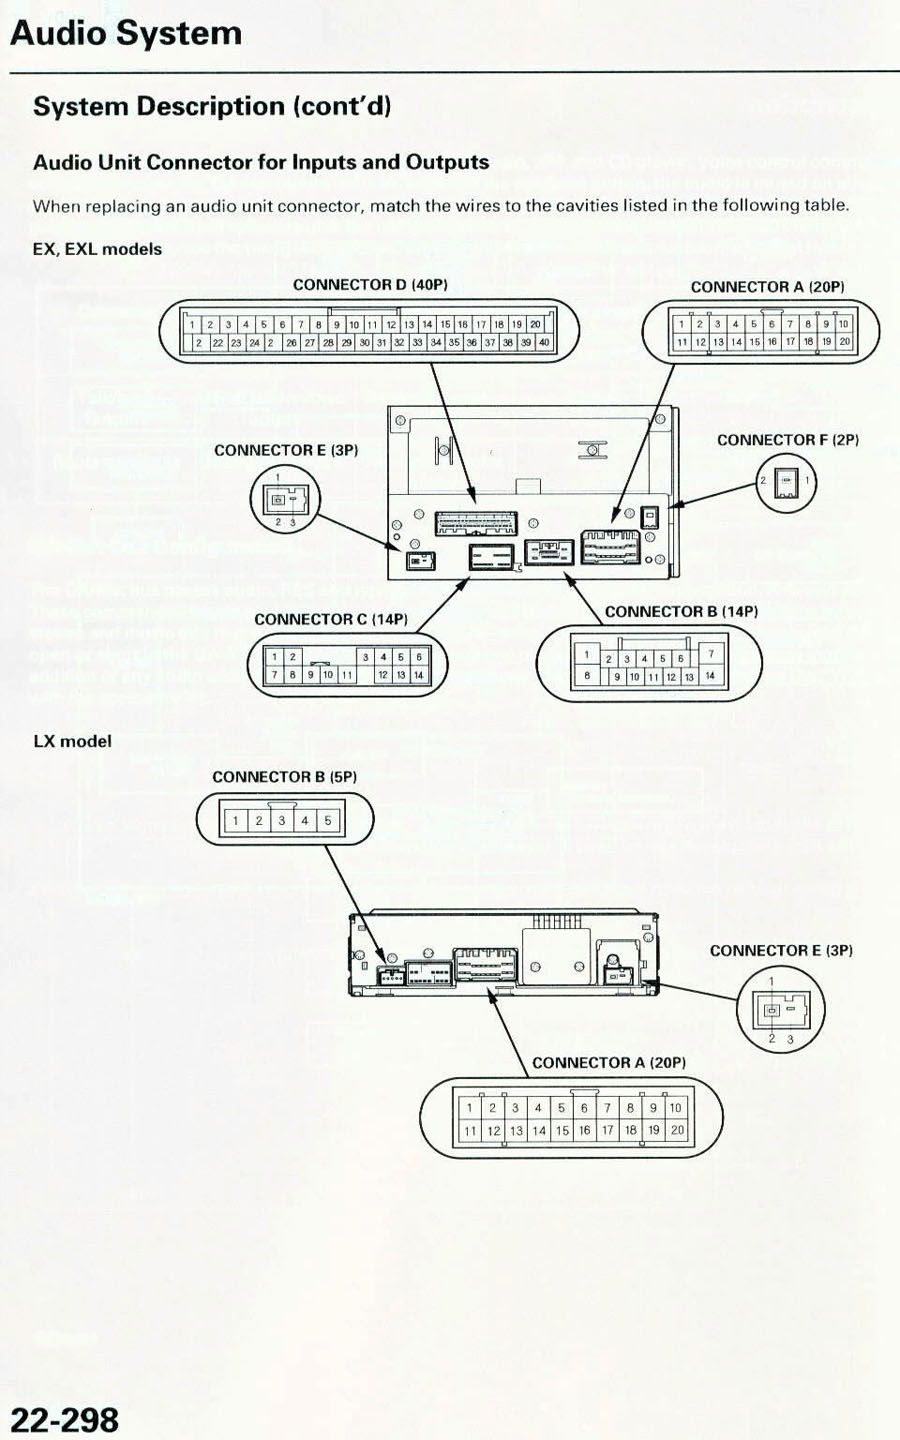 99 civic ex wiring diagram jl audio 12w6v2 2007 honda pilot stereo data schema re factory subwoofer and aftermarket hu relay